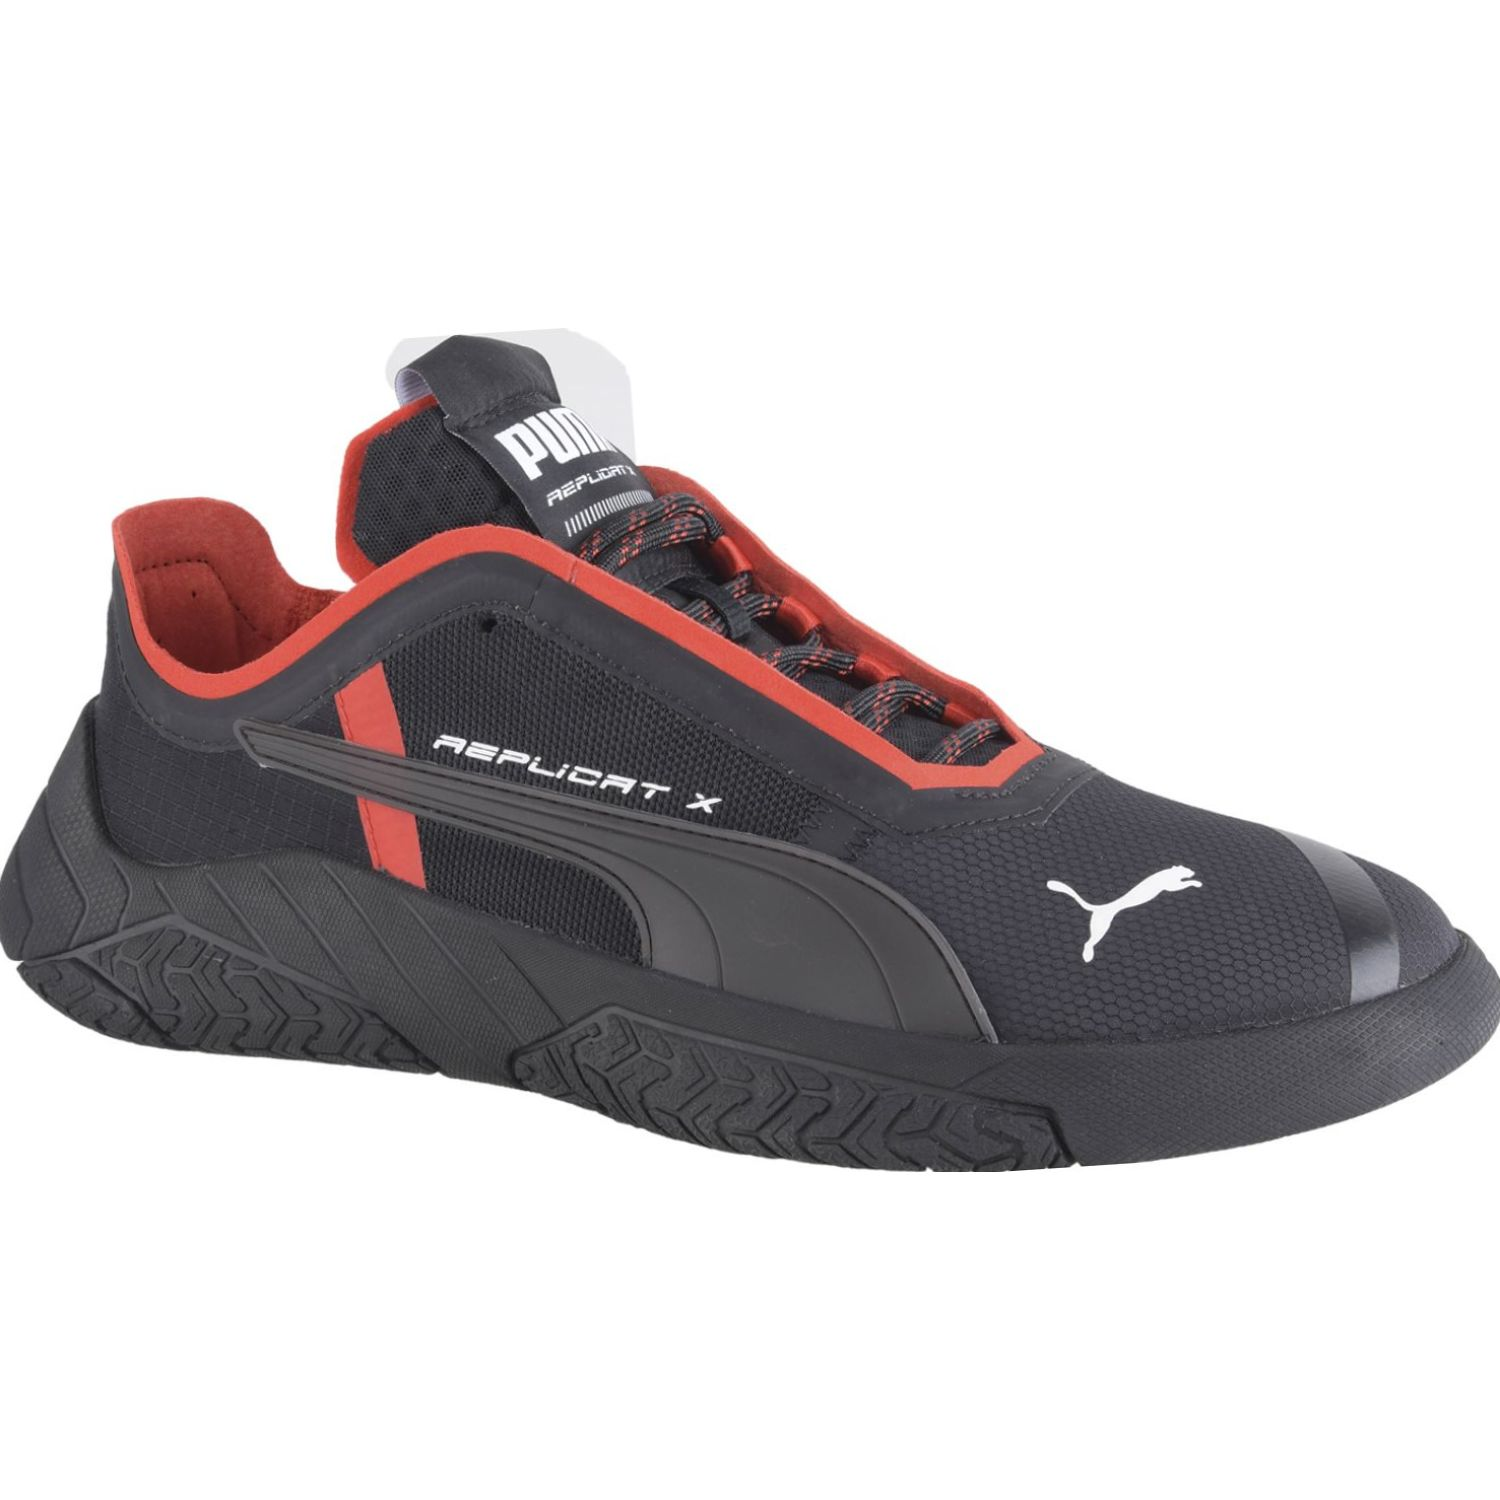 Puma replicat-x circuit Negro / rojo Walking